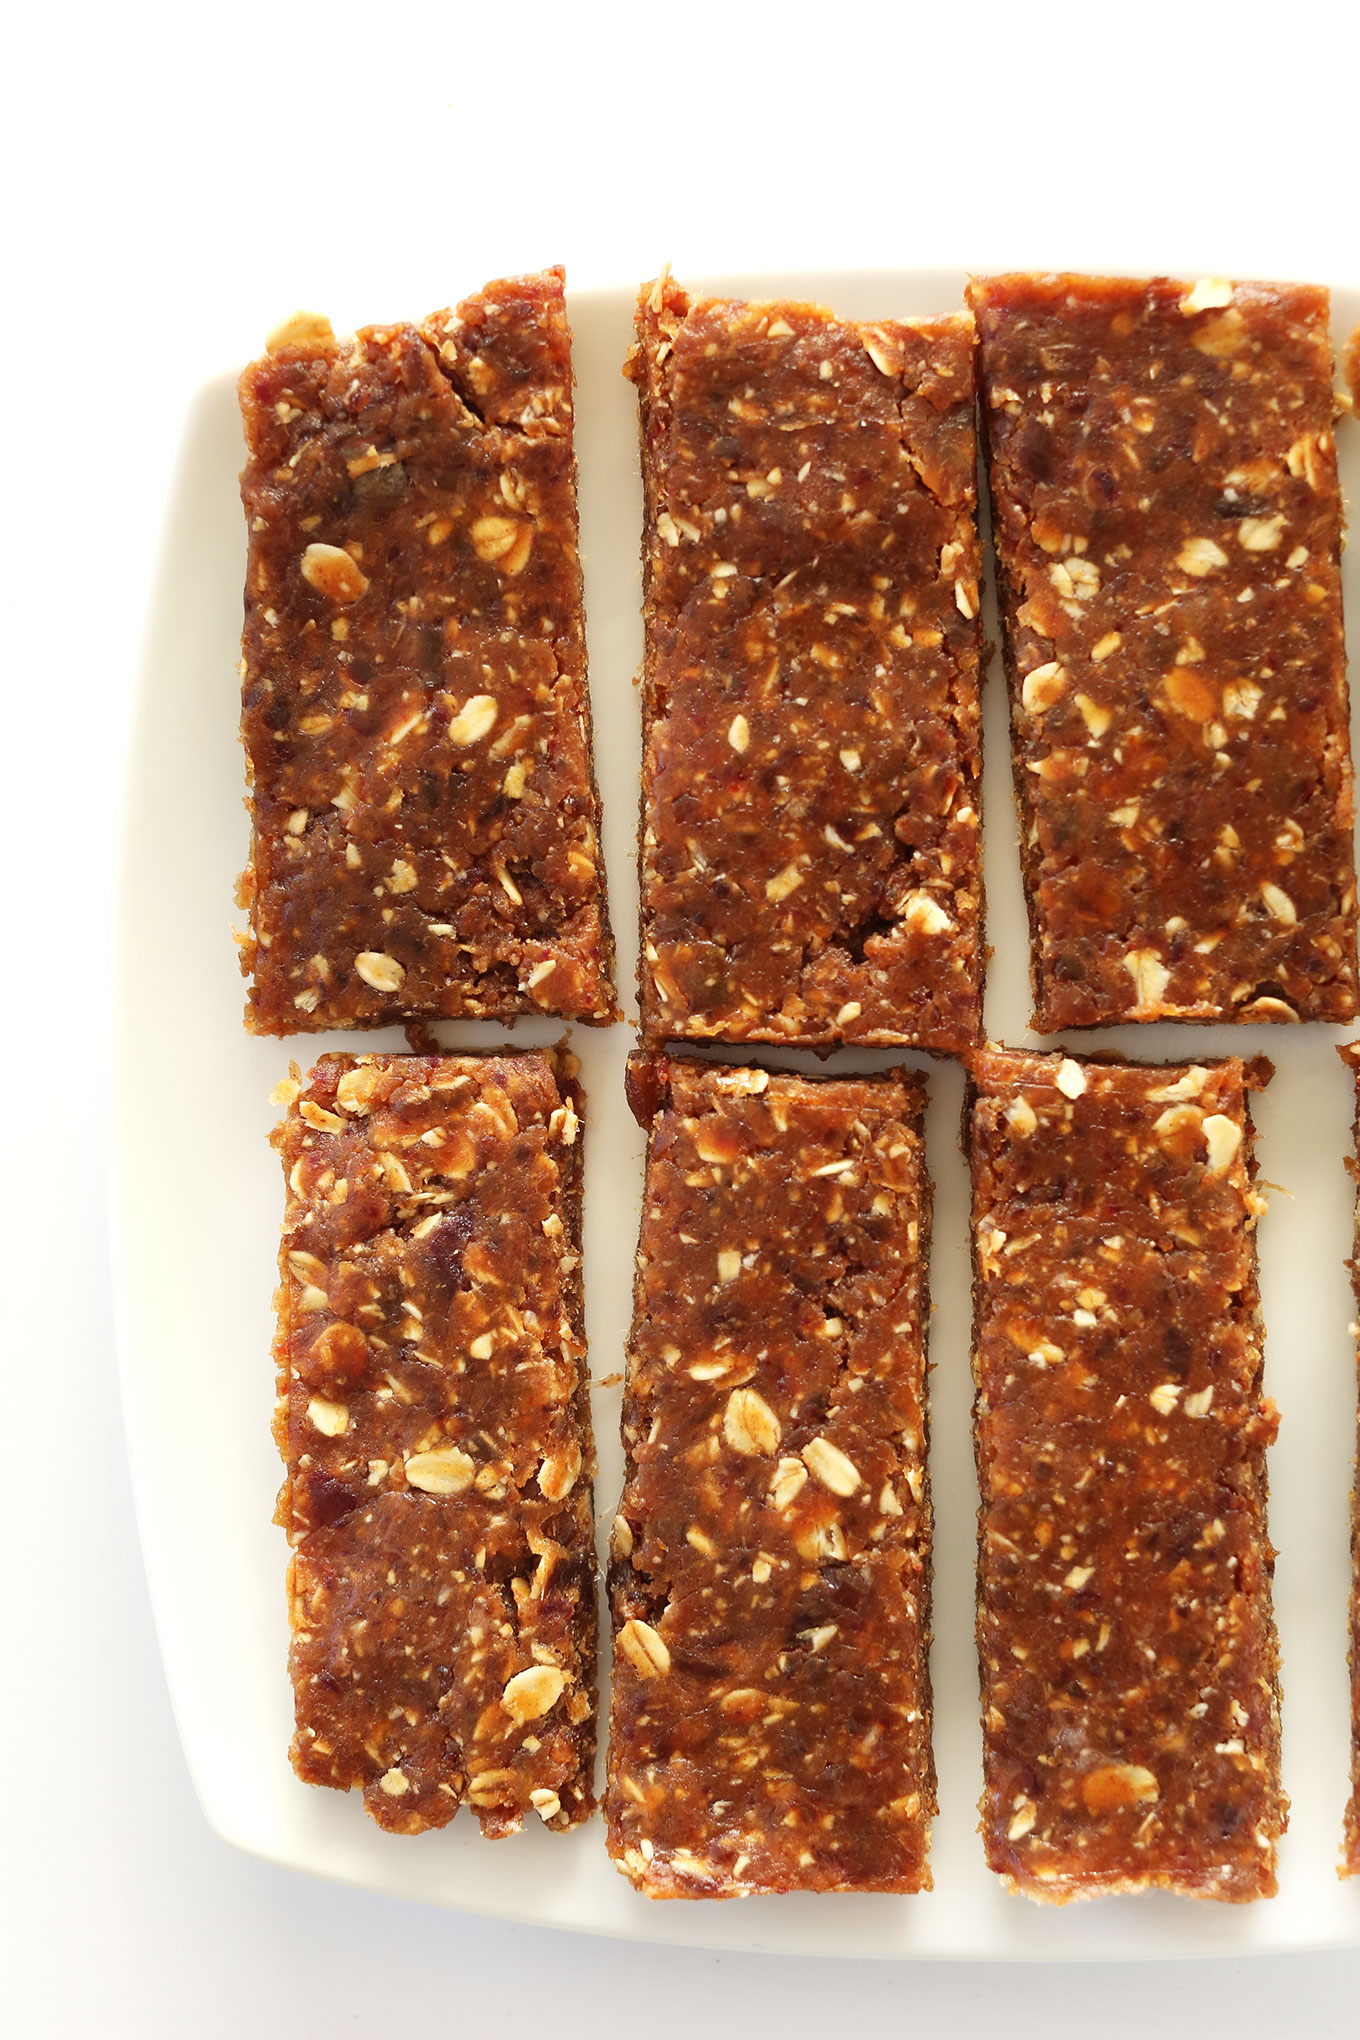 Plate of our Peanut Butter Copycat Larabars recipe